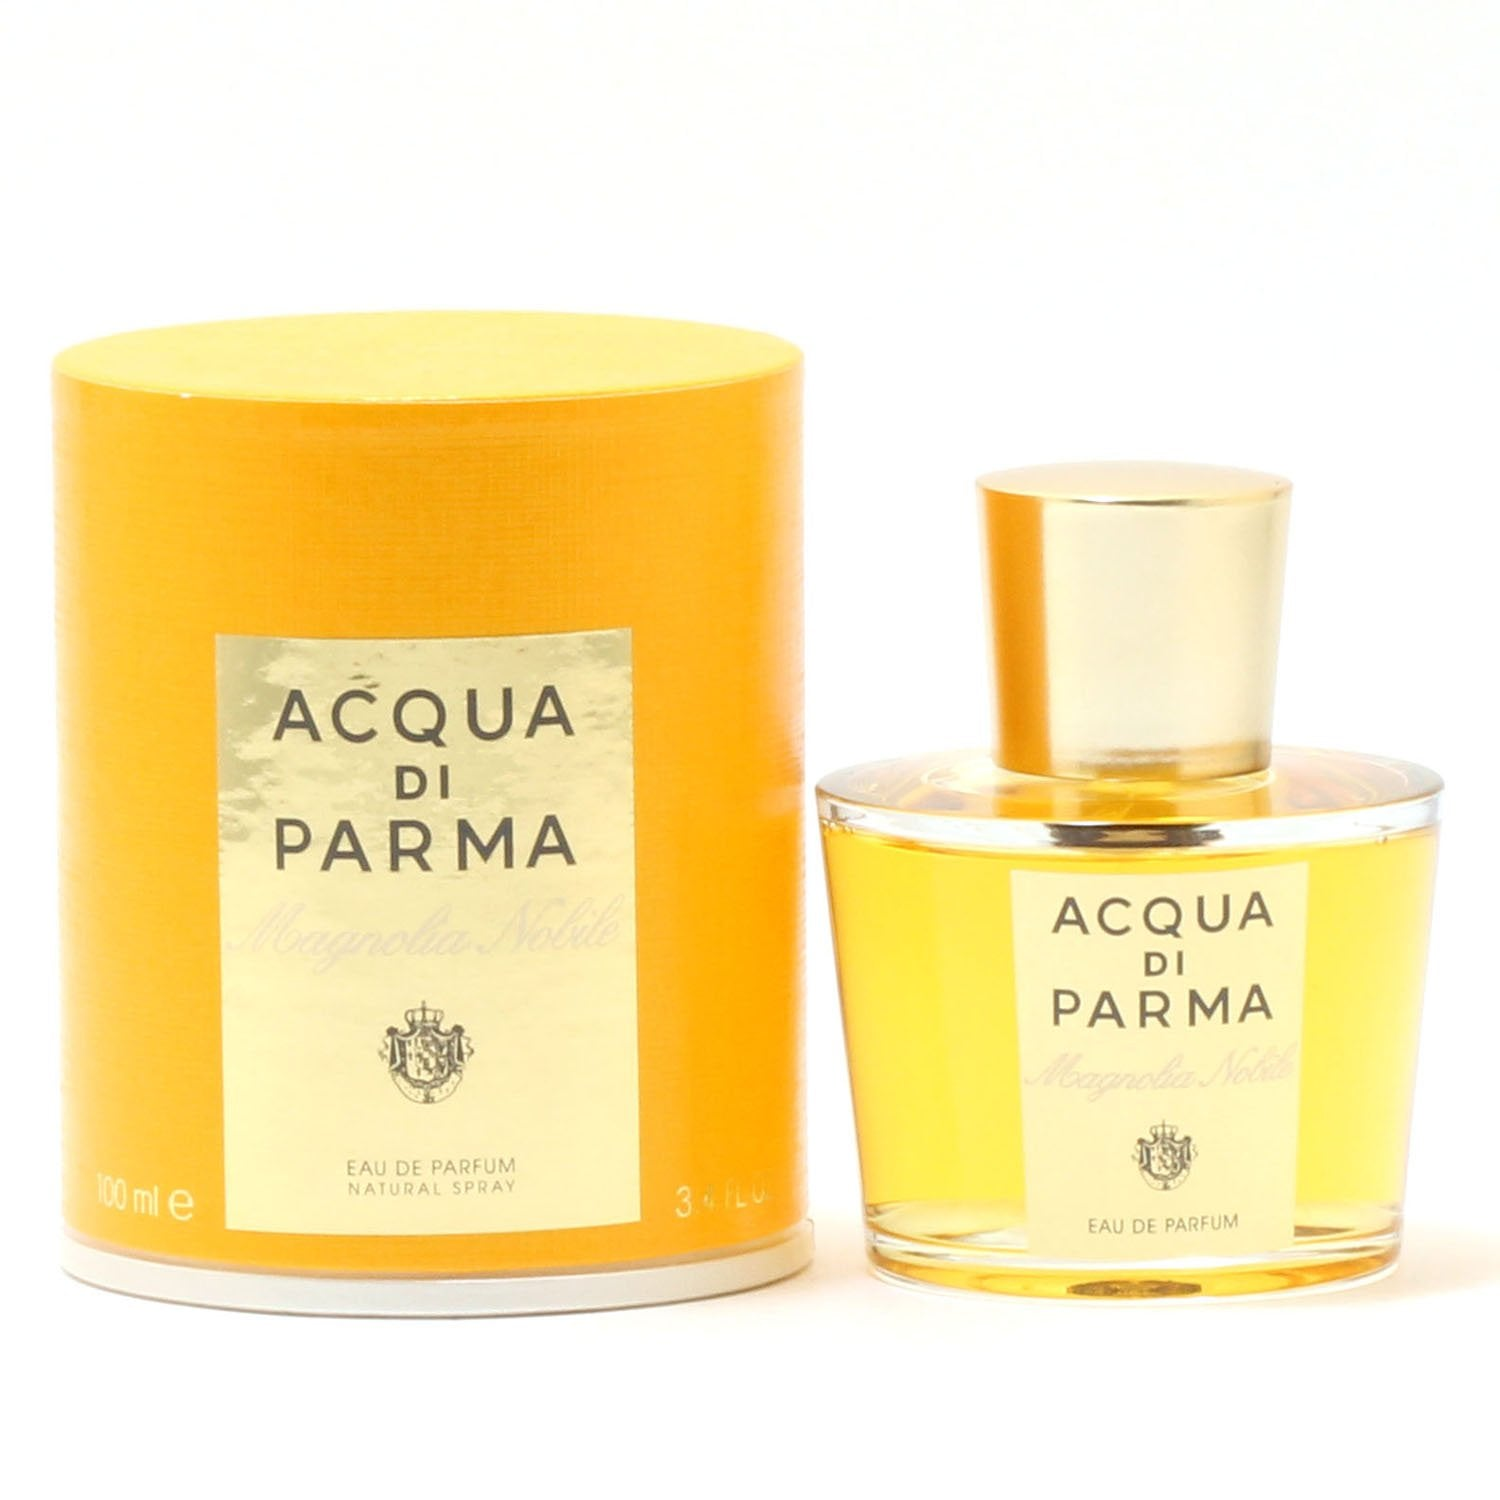 Perfume - ACQUA DI PARMA MAGNOLIANOBILE FOR WOMEN - EAU DE PARFUM SPRAY, 3.4 OZ